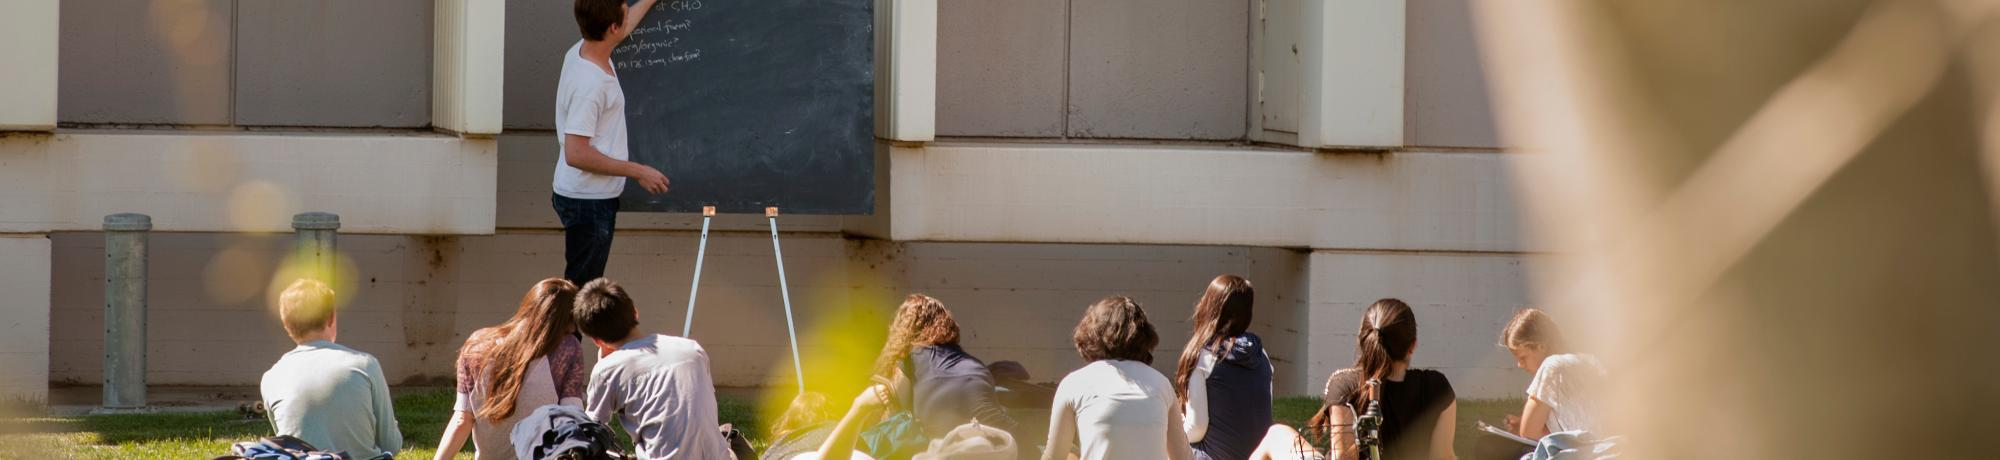 Photo: Class meeting outdoors